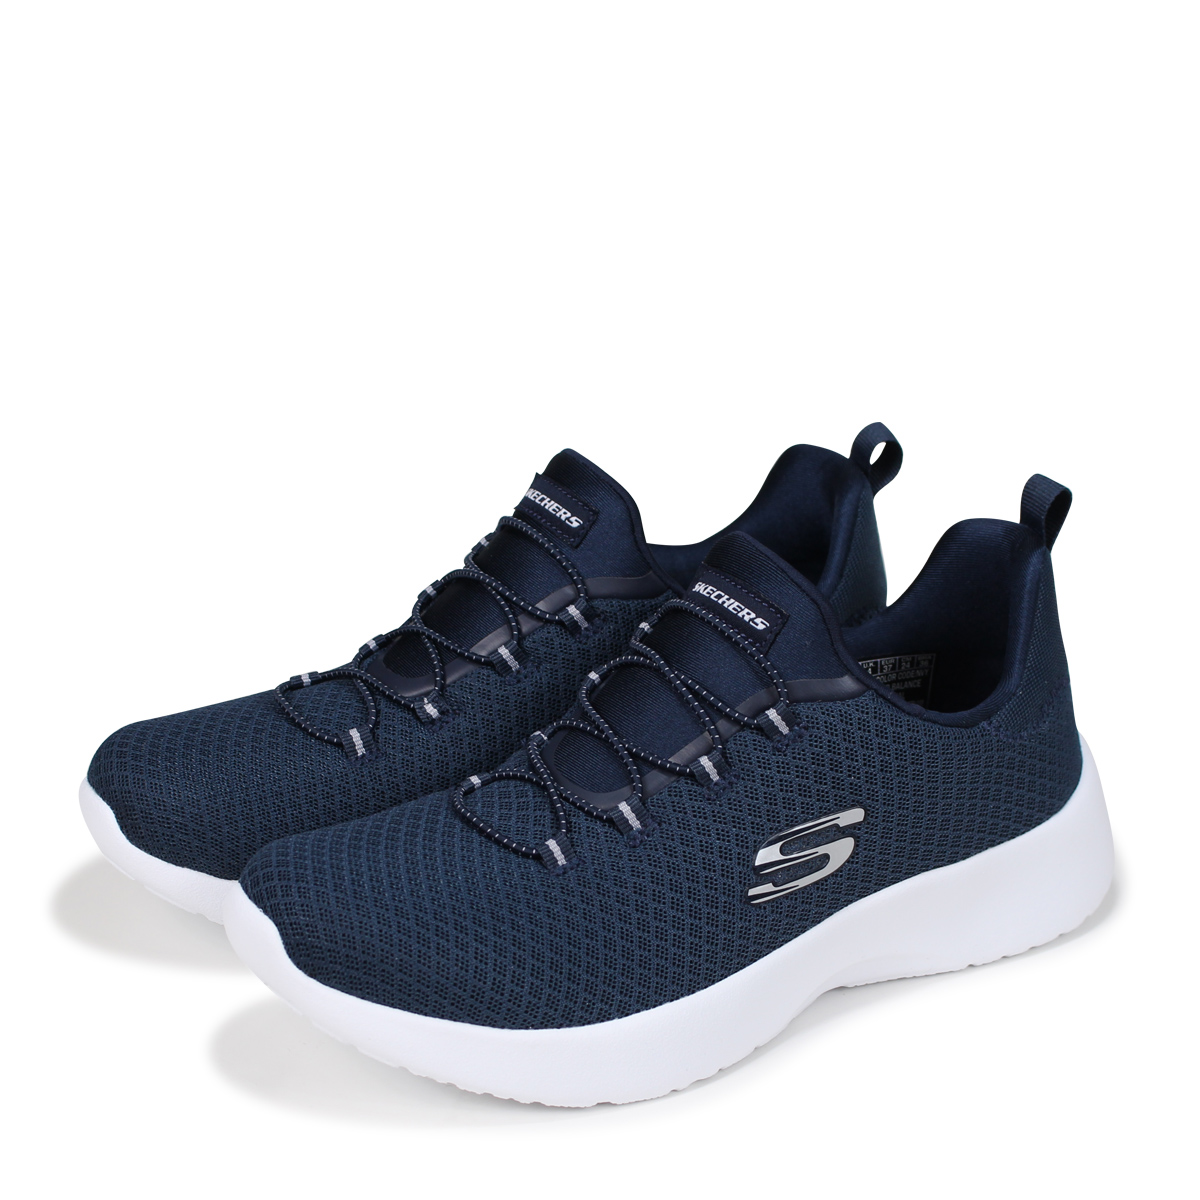 235387218e0 SKECHERS DYNAMIGHT スケッチャーズダイナマイトレディーススニーカー 12119 navy  load planned Shinnyu  load in reservation product 6 15 containing   186